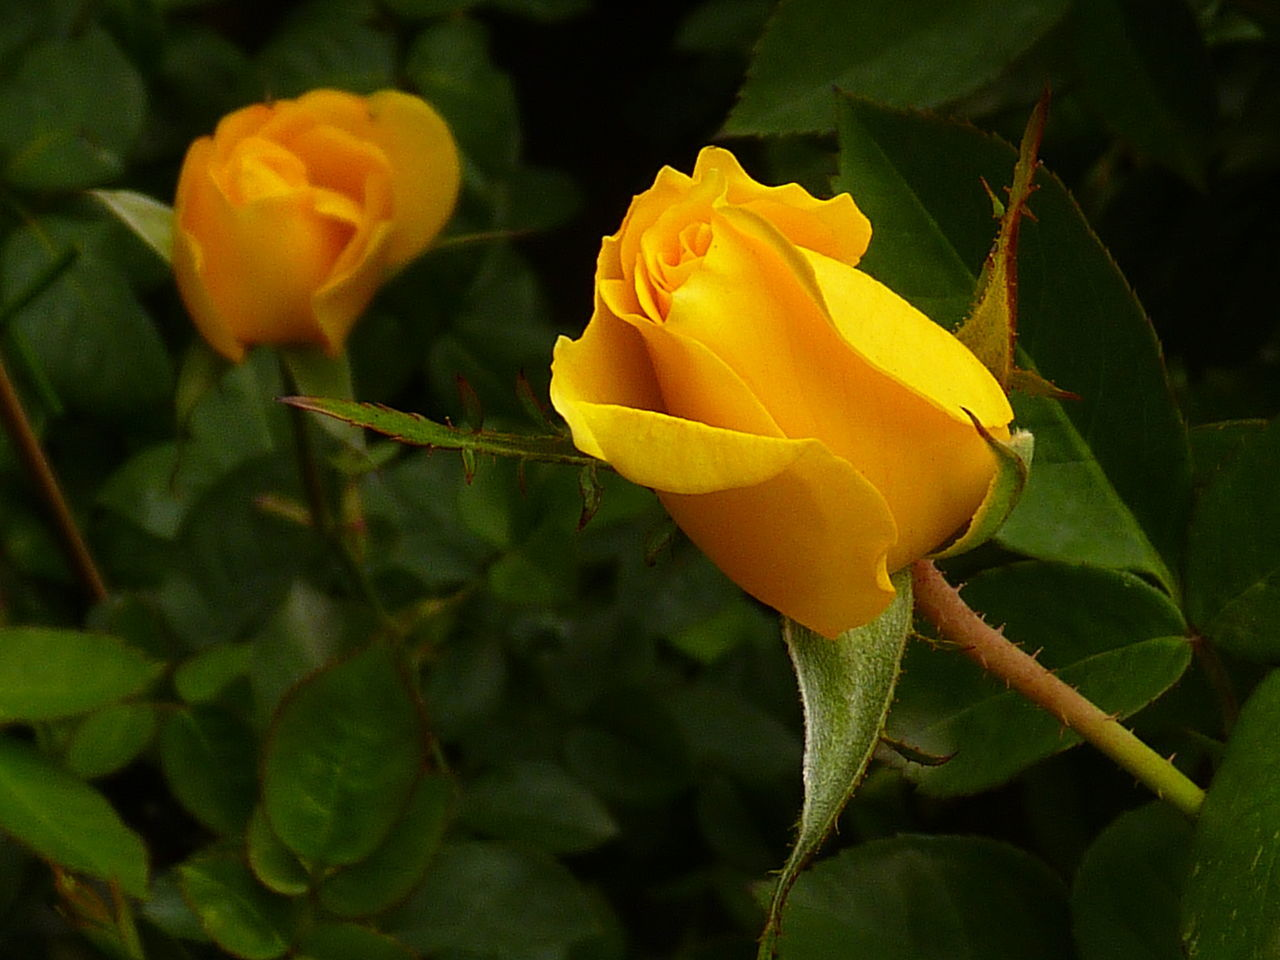 flower, petal, nature, growth, beauty in nature, fragility, plant, yellow, freshness, flower head, rose - flower, blooming, leaf, no people, close-up, outdoors, day